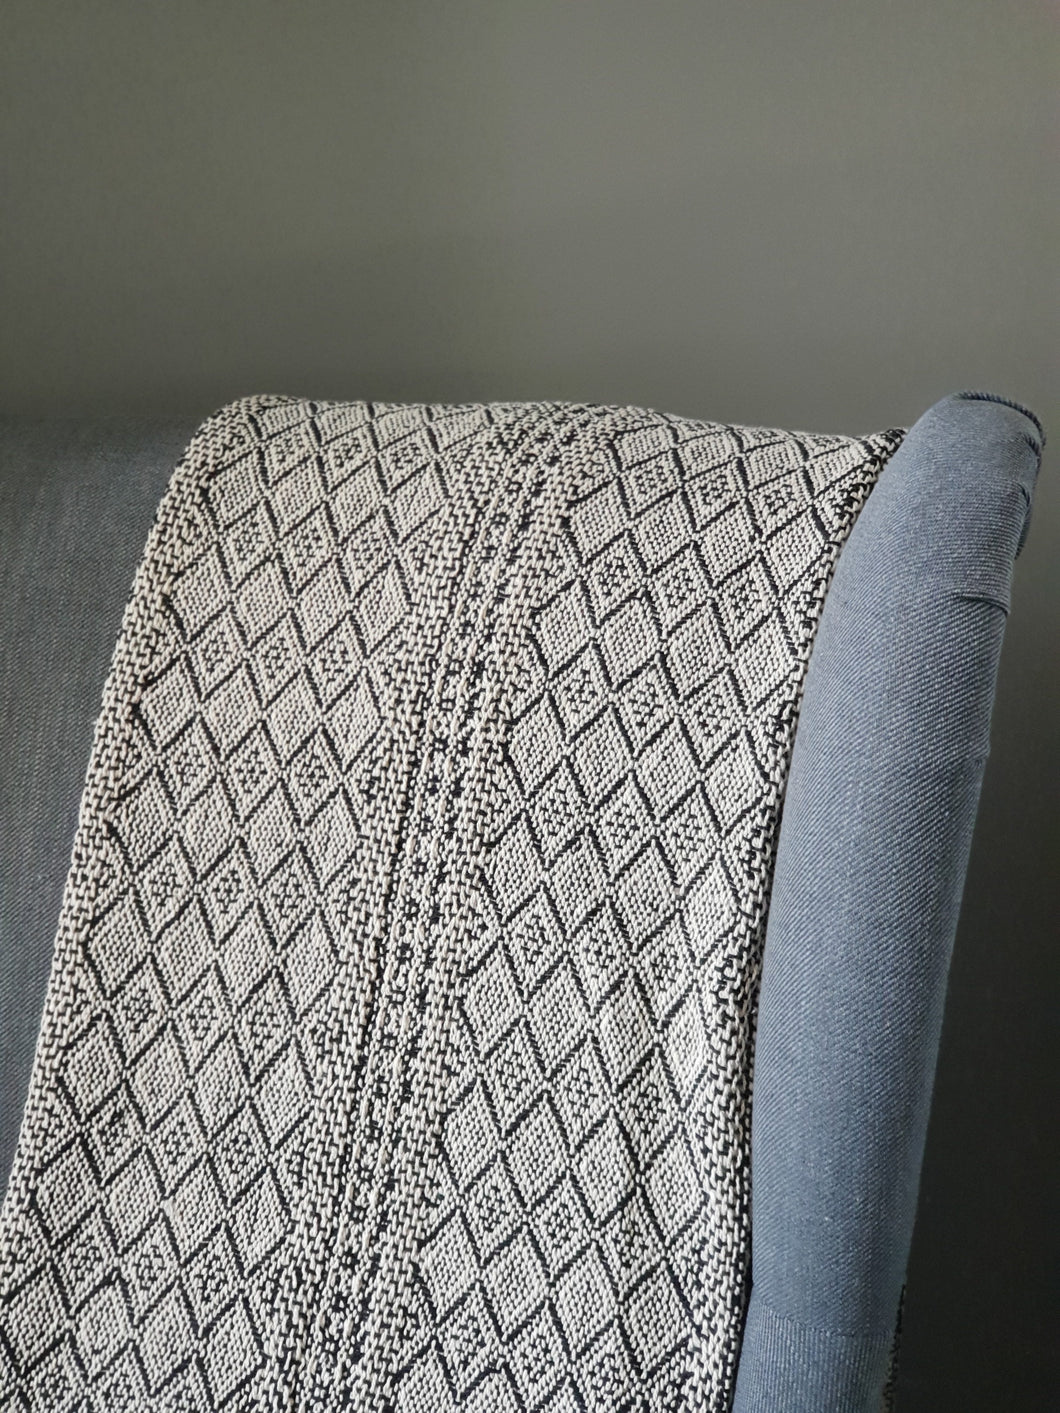 Liv Interior Natural/ Black Diamond Print Throw